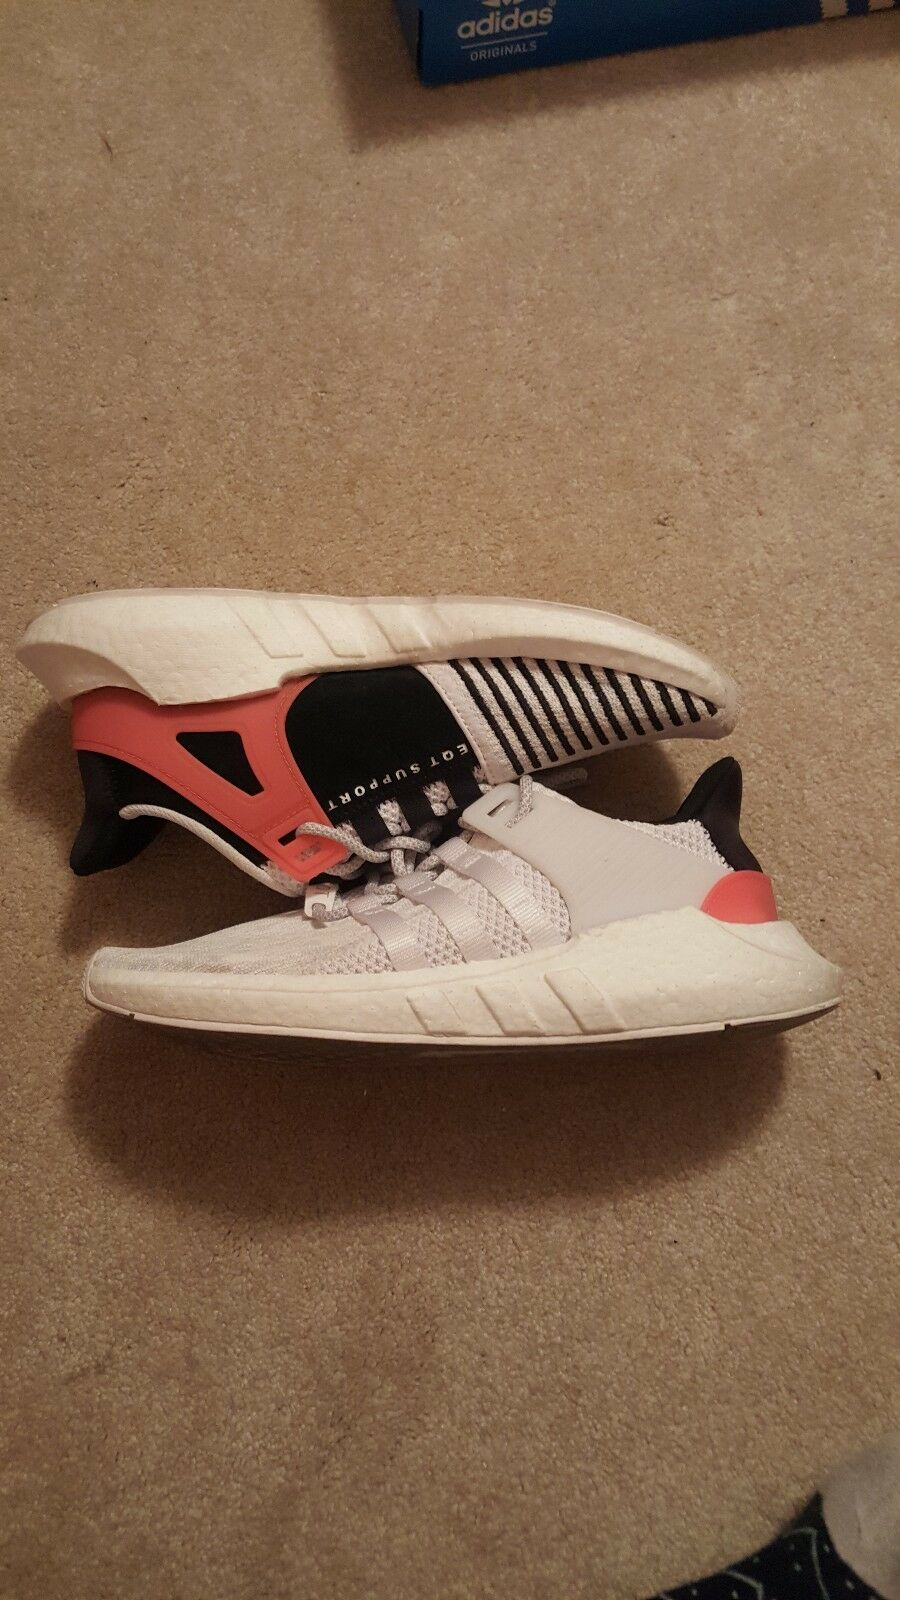 Adidas EQT Support 93/17 Infrared Size 10.5